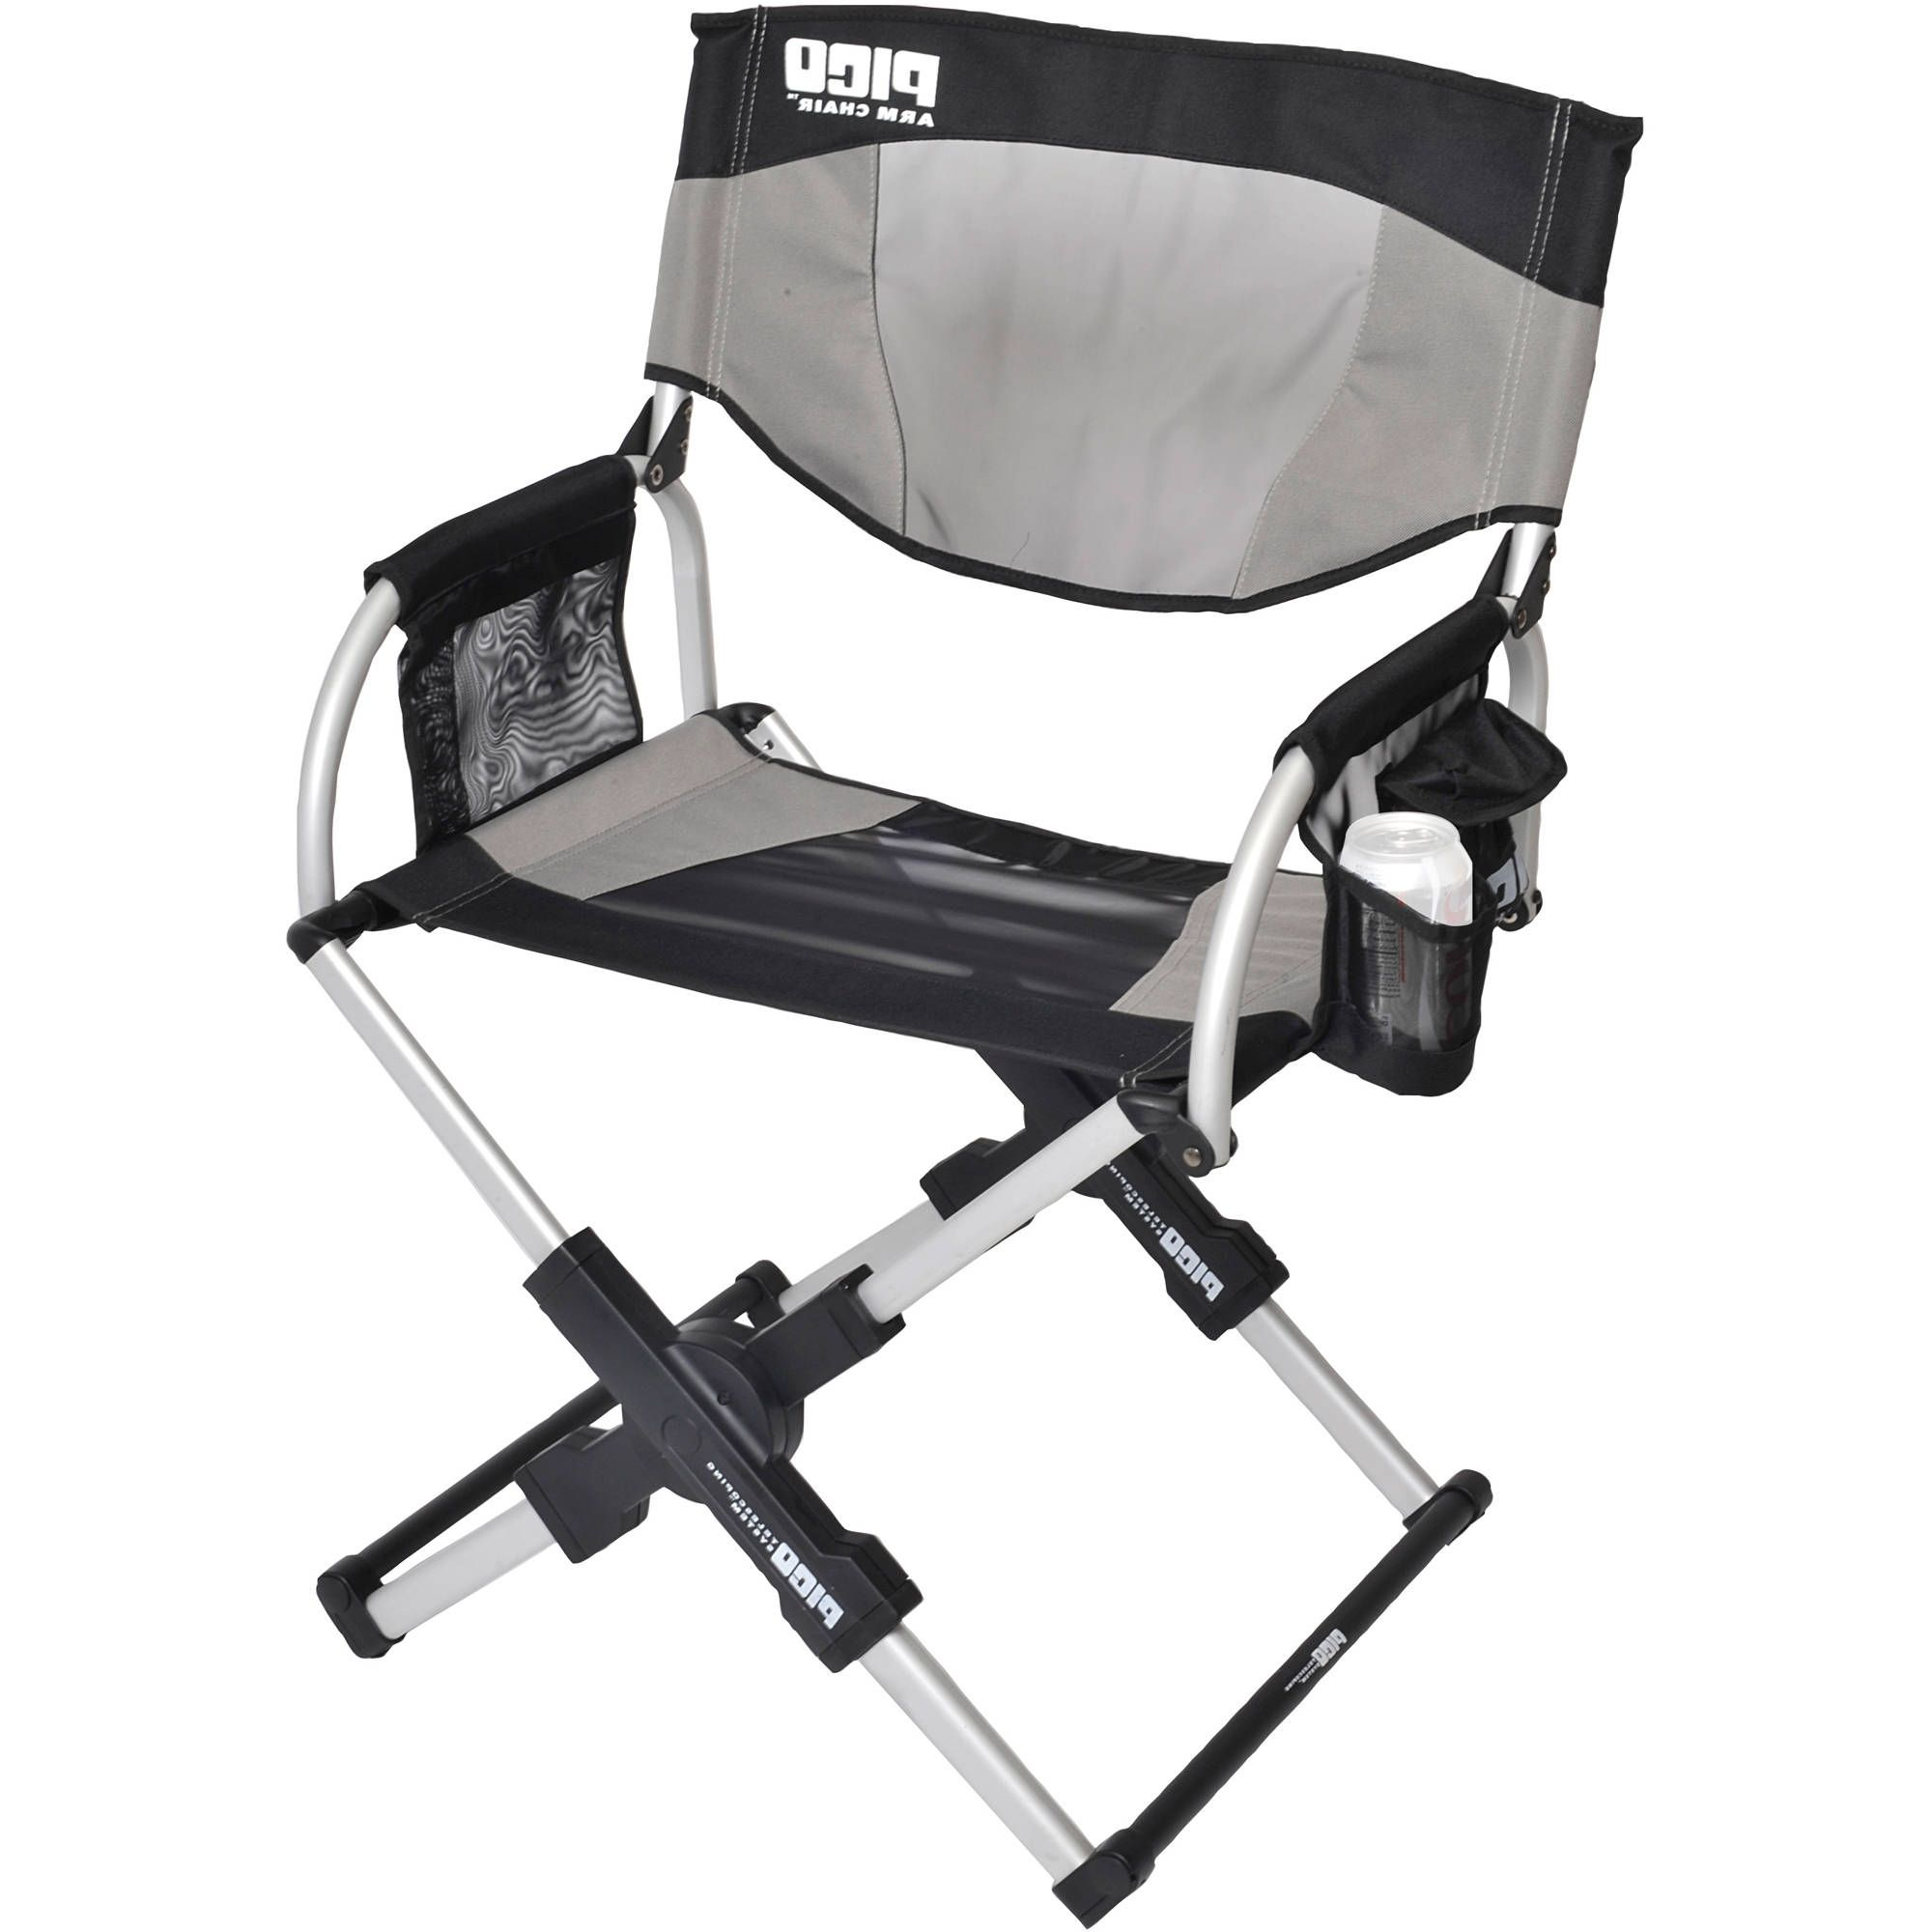 Gci Pico Folding Chair Folding Chairs Pinterest